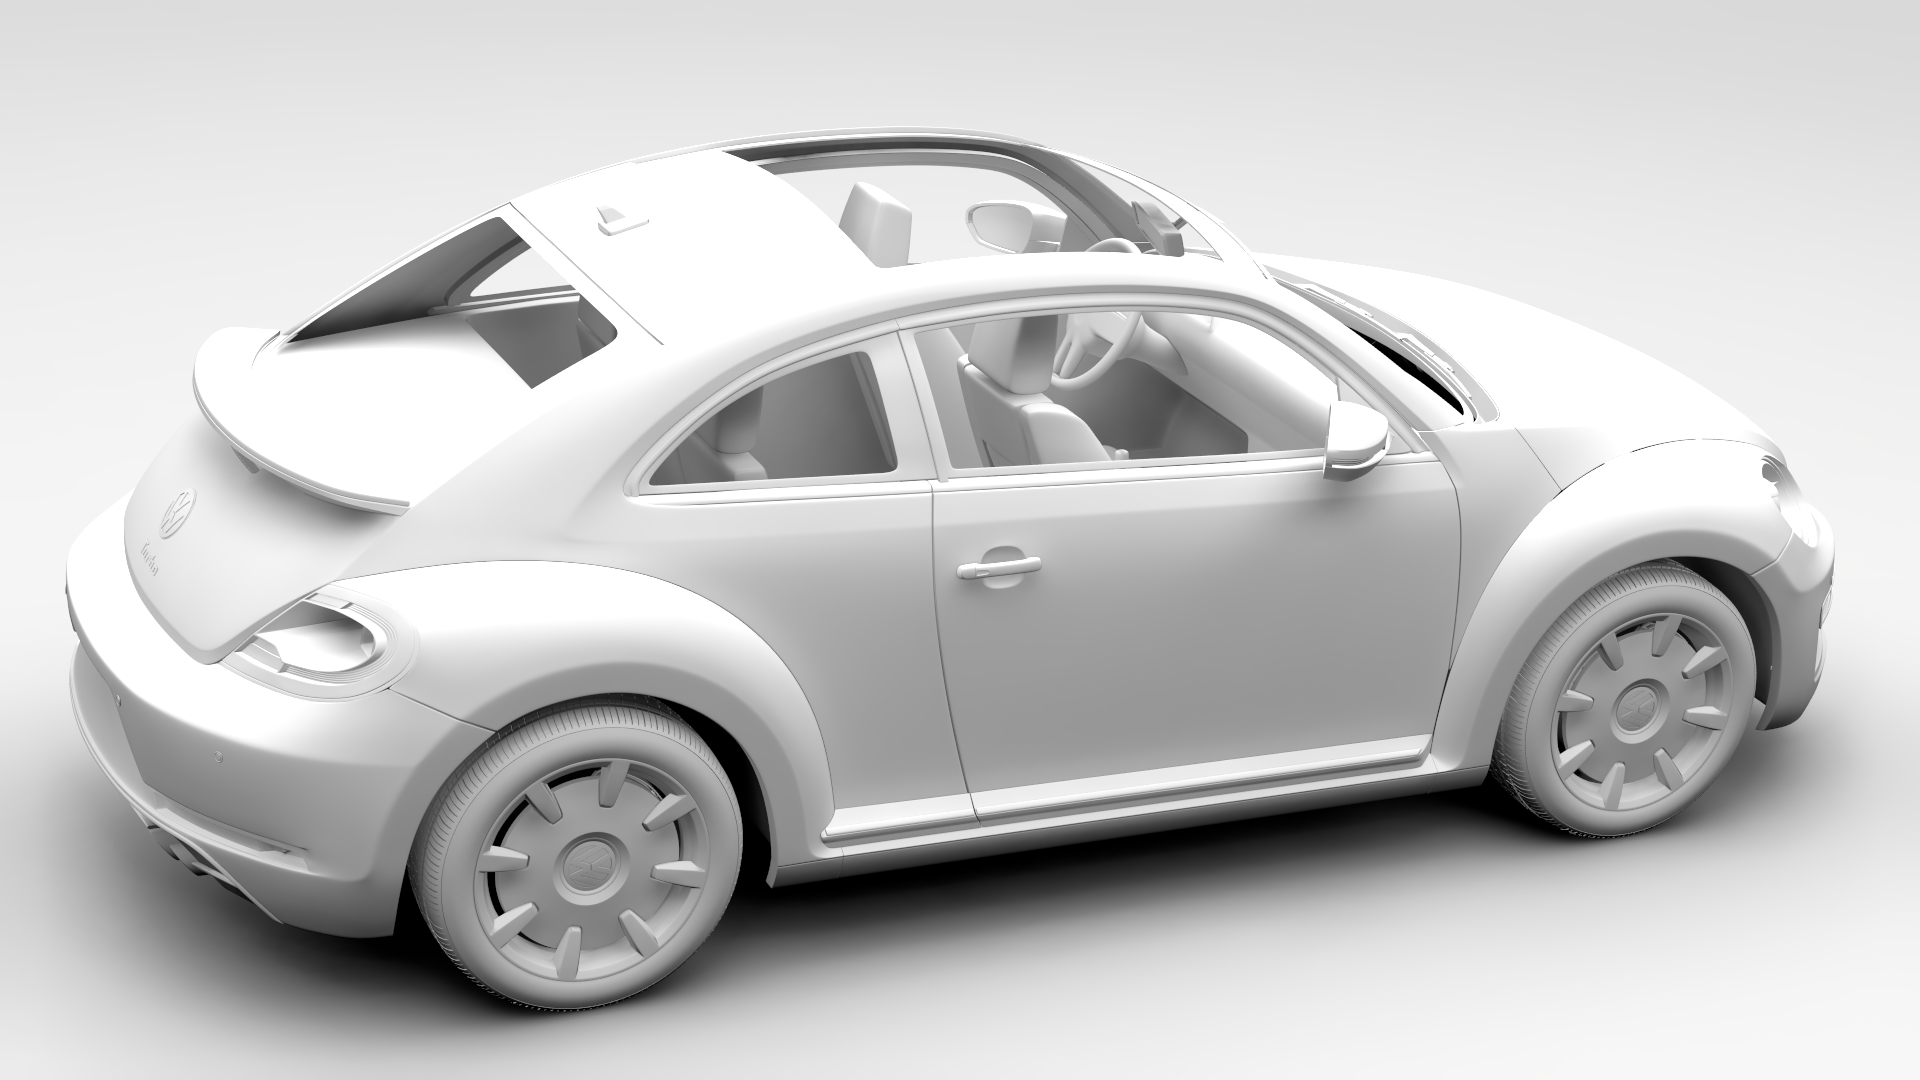 vw beetle turbo 2017 by creator 3d 3docean. Black Bedroom Furniture Sets. Home Design Ideas